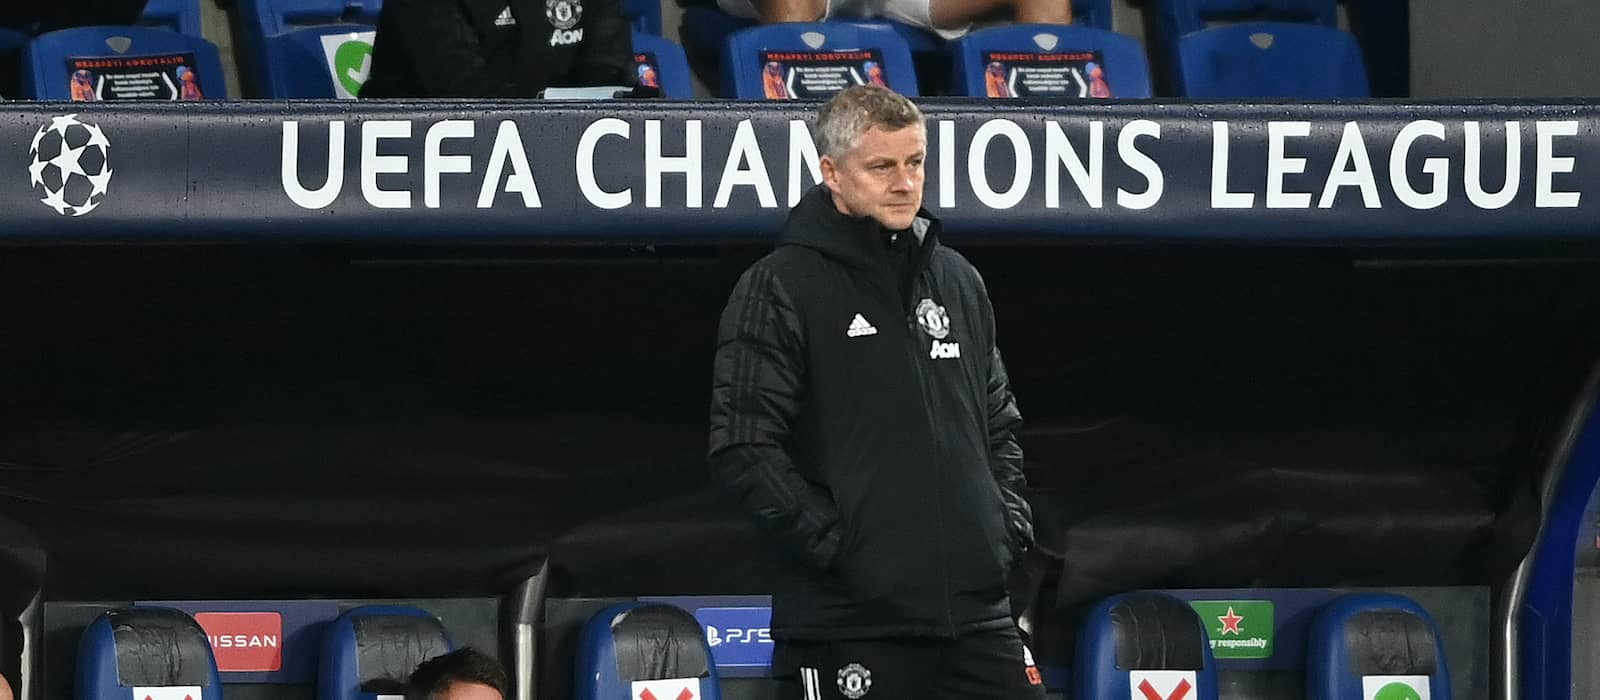 Latest statistic shows Manchester United should brush aside West Brom